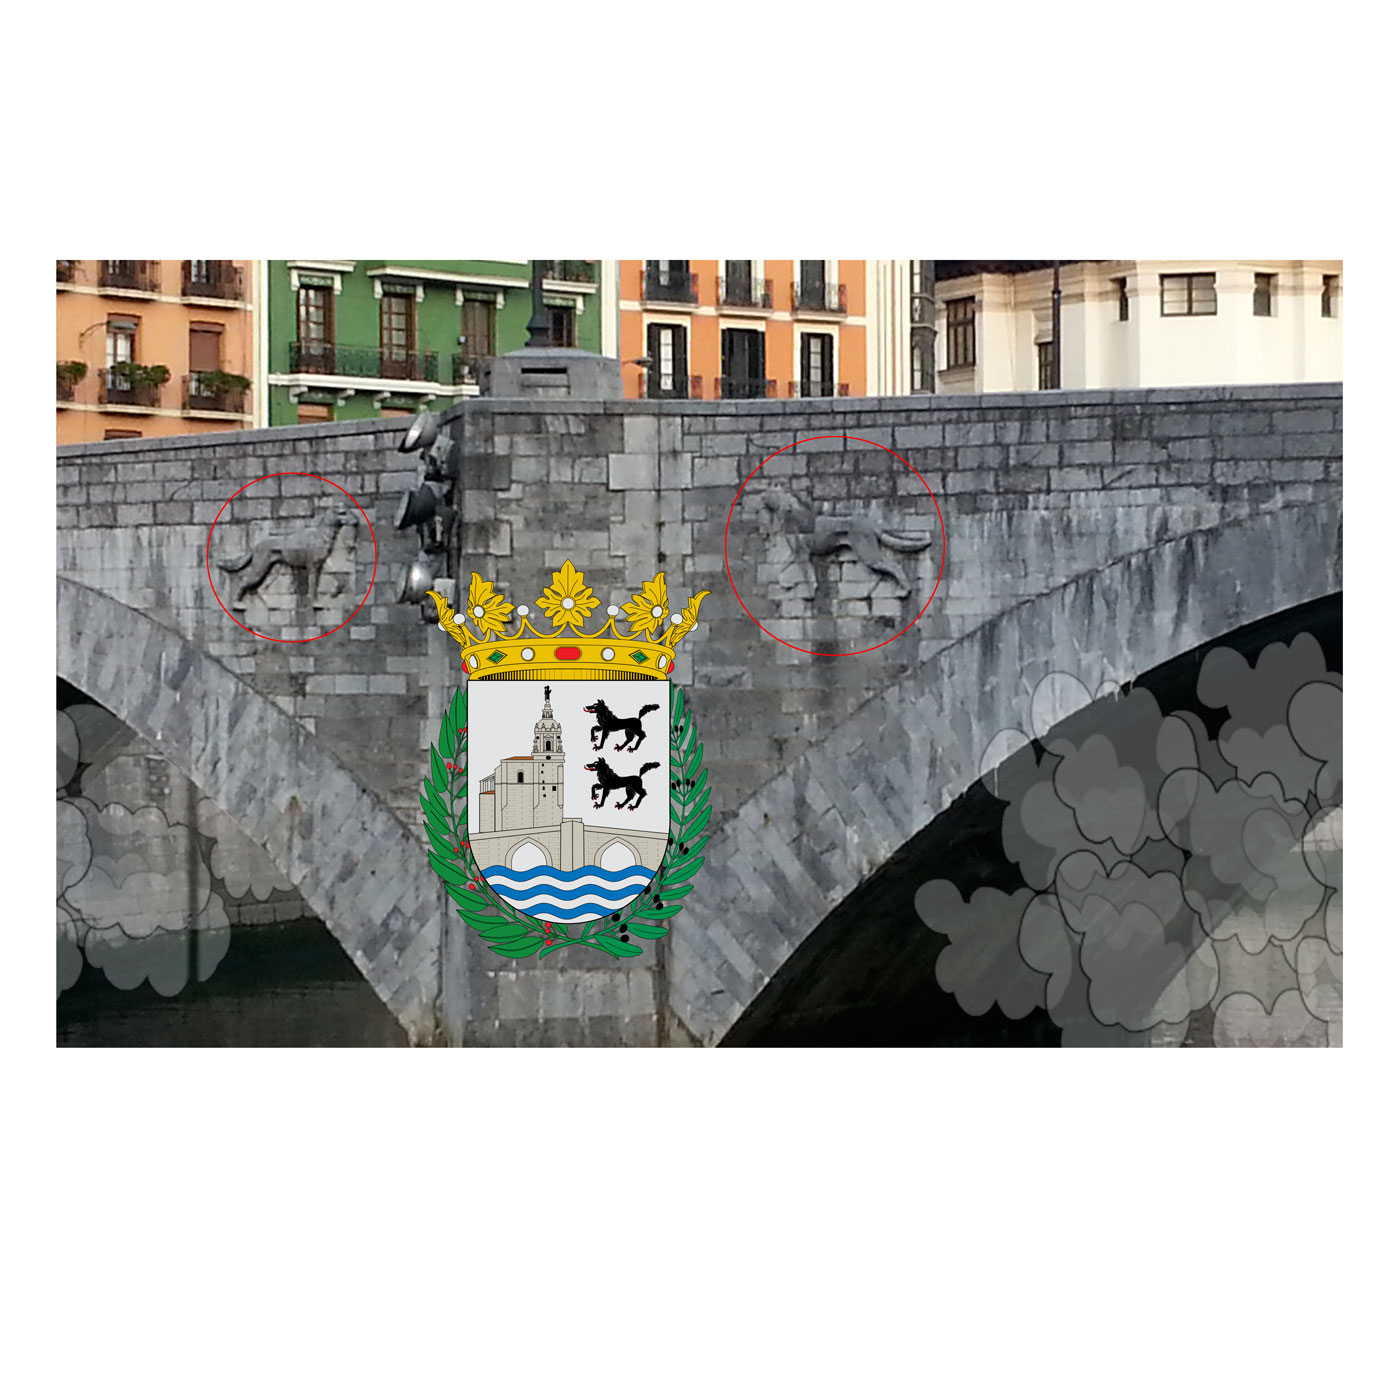 BILBAO BRIDGE, old town, heraldry, sheep mobilé, © 2014